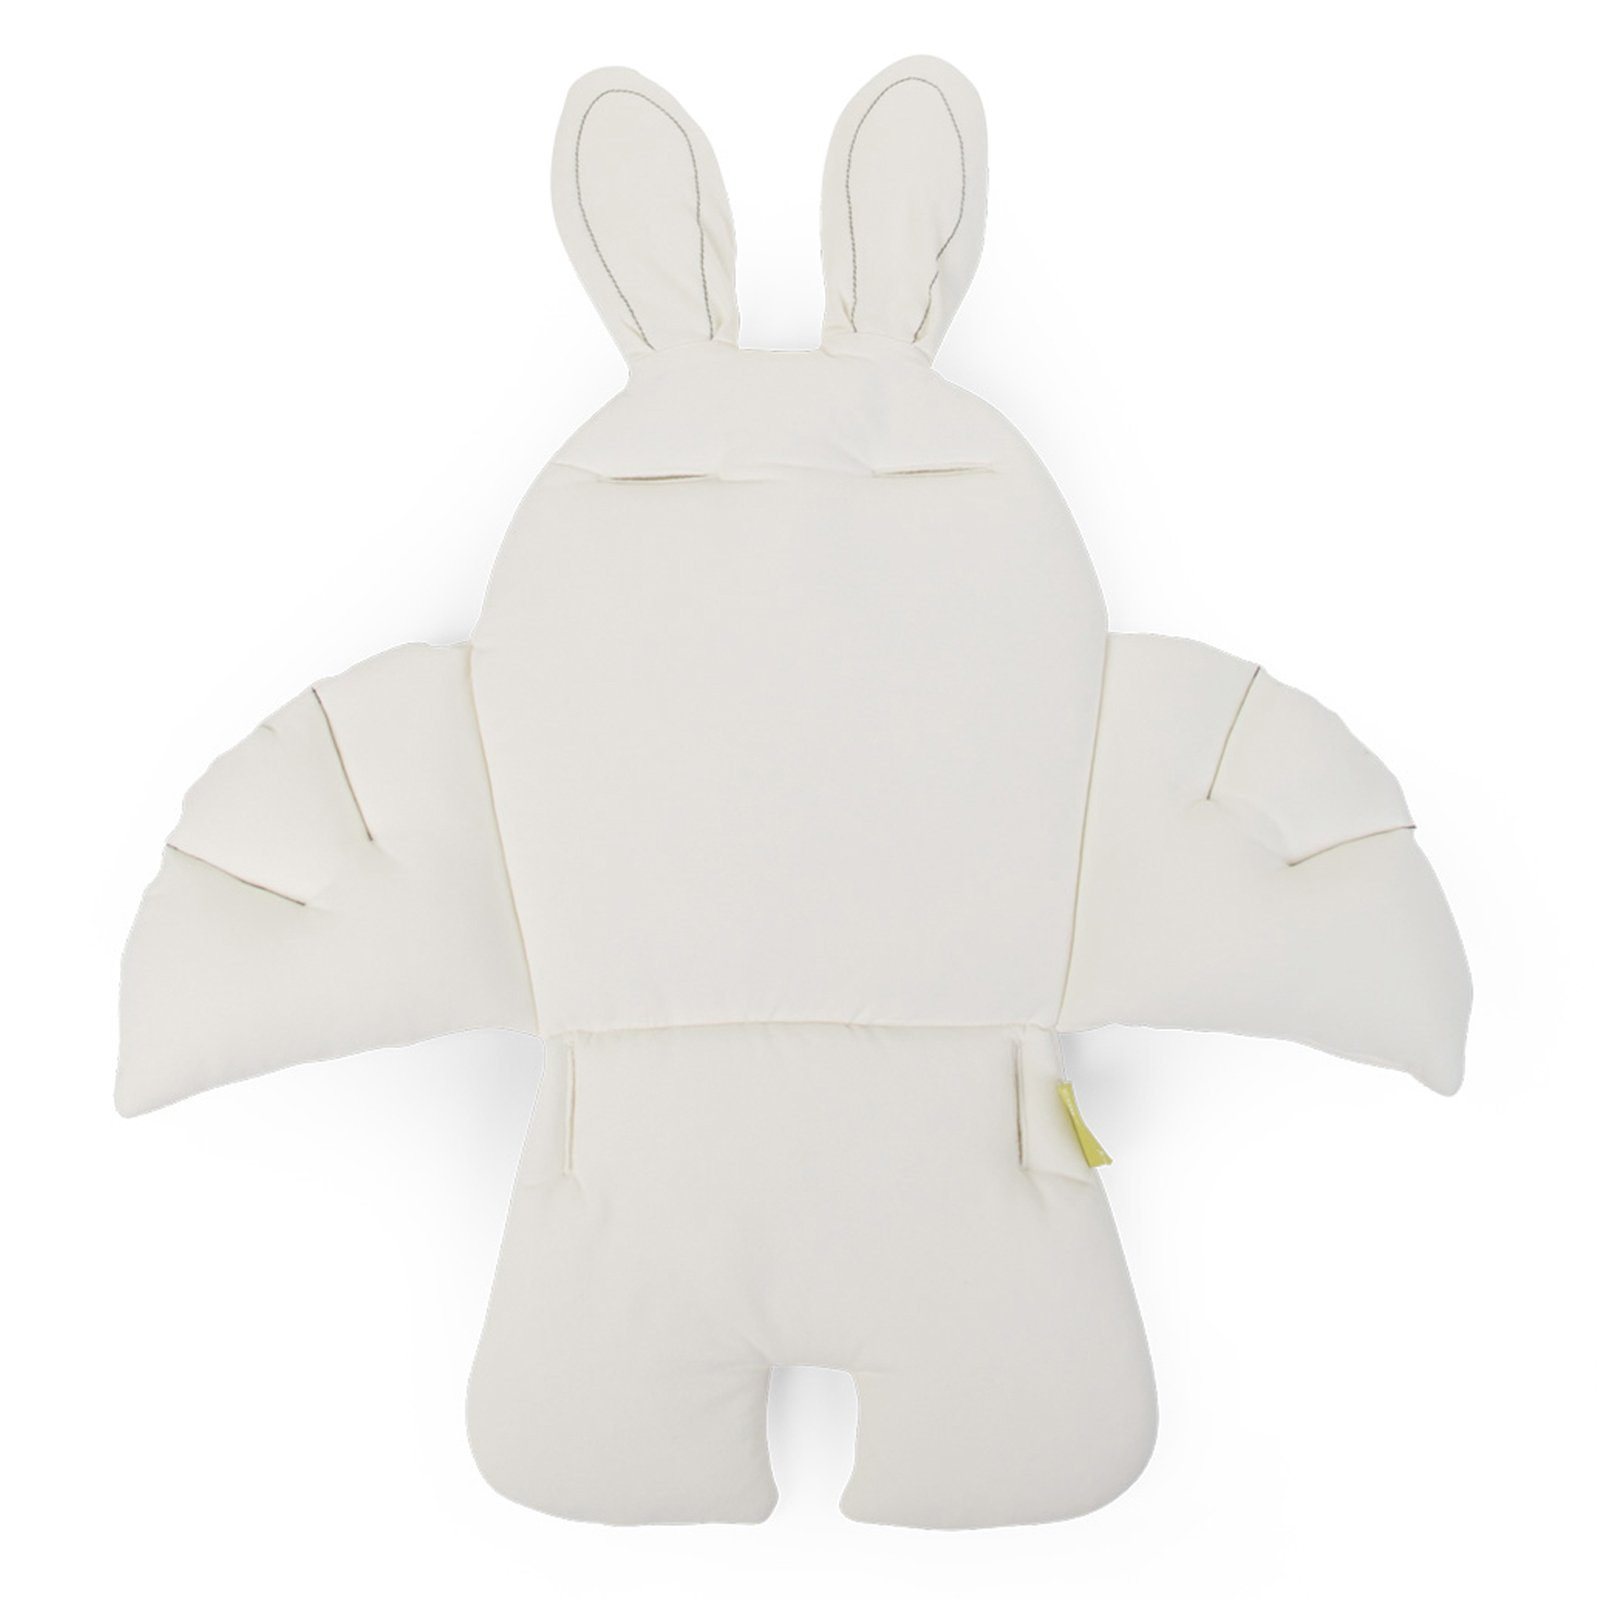 Rabbit Cushion - White Child Home